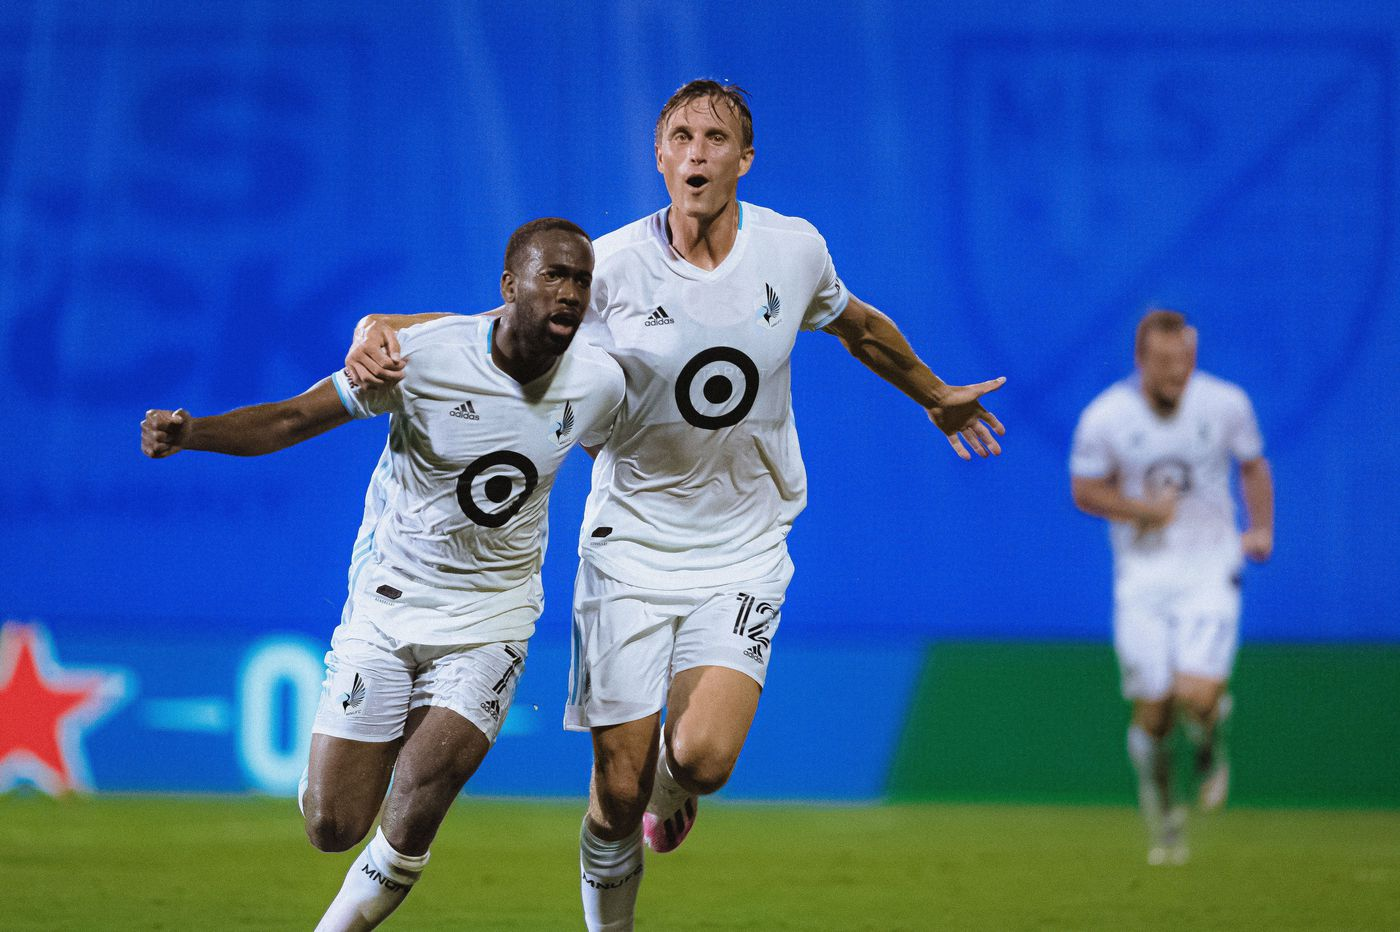 Minnesota stuns Kansas City late, Real Salt Lake beats Colorado in MLS tournament